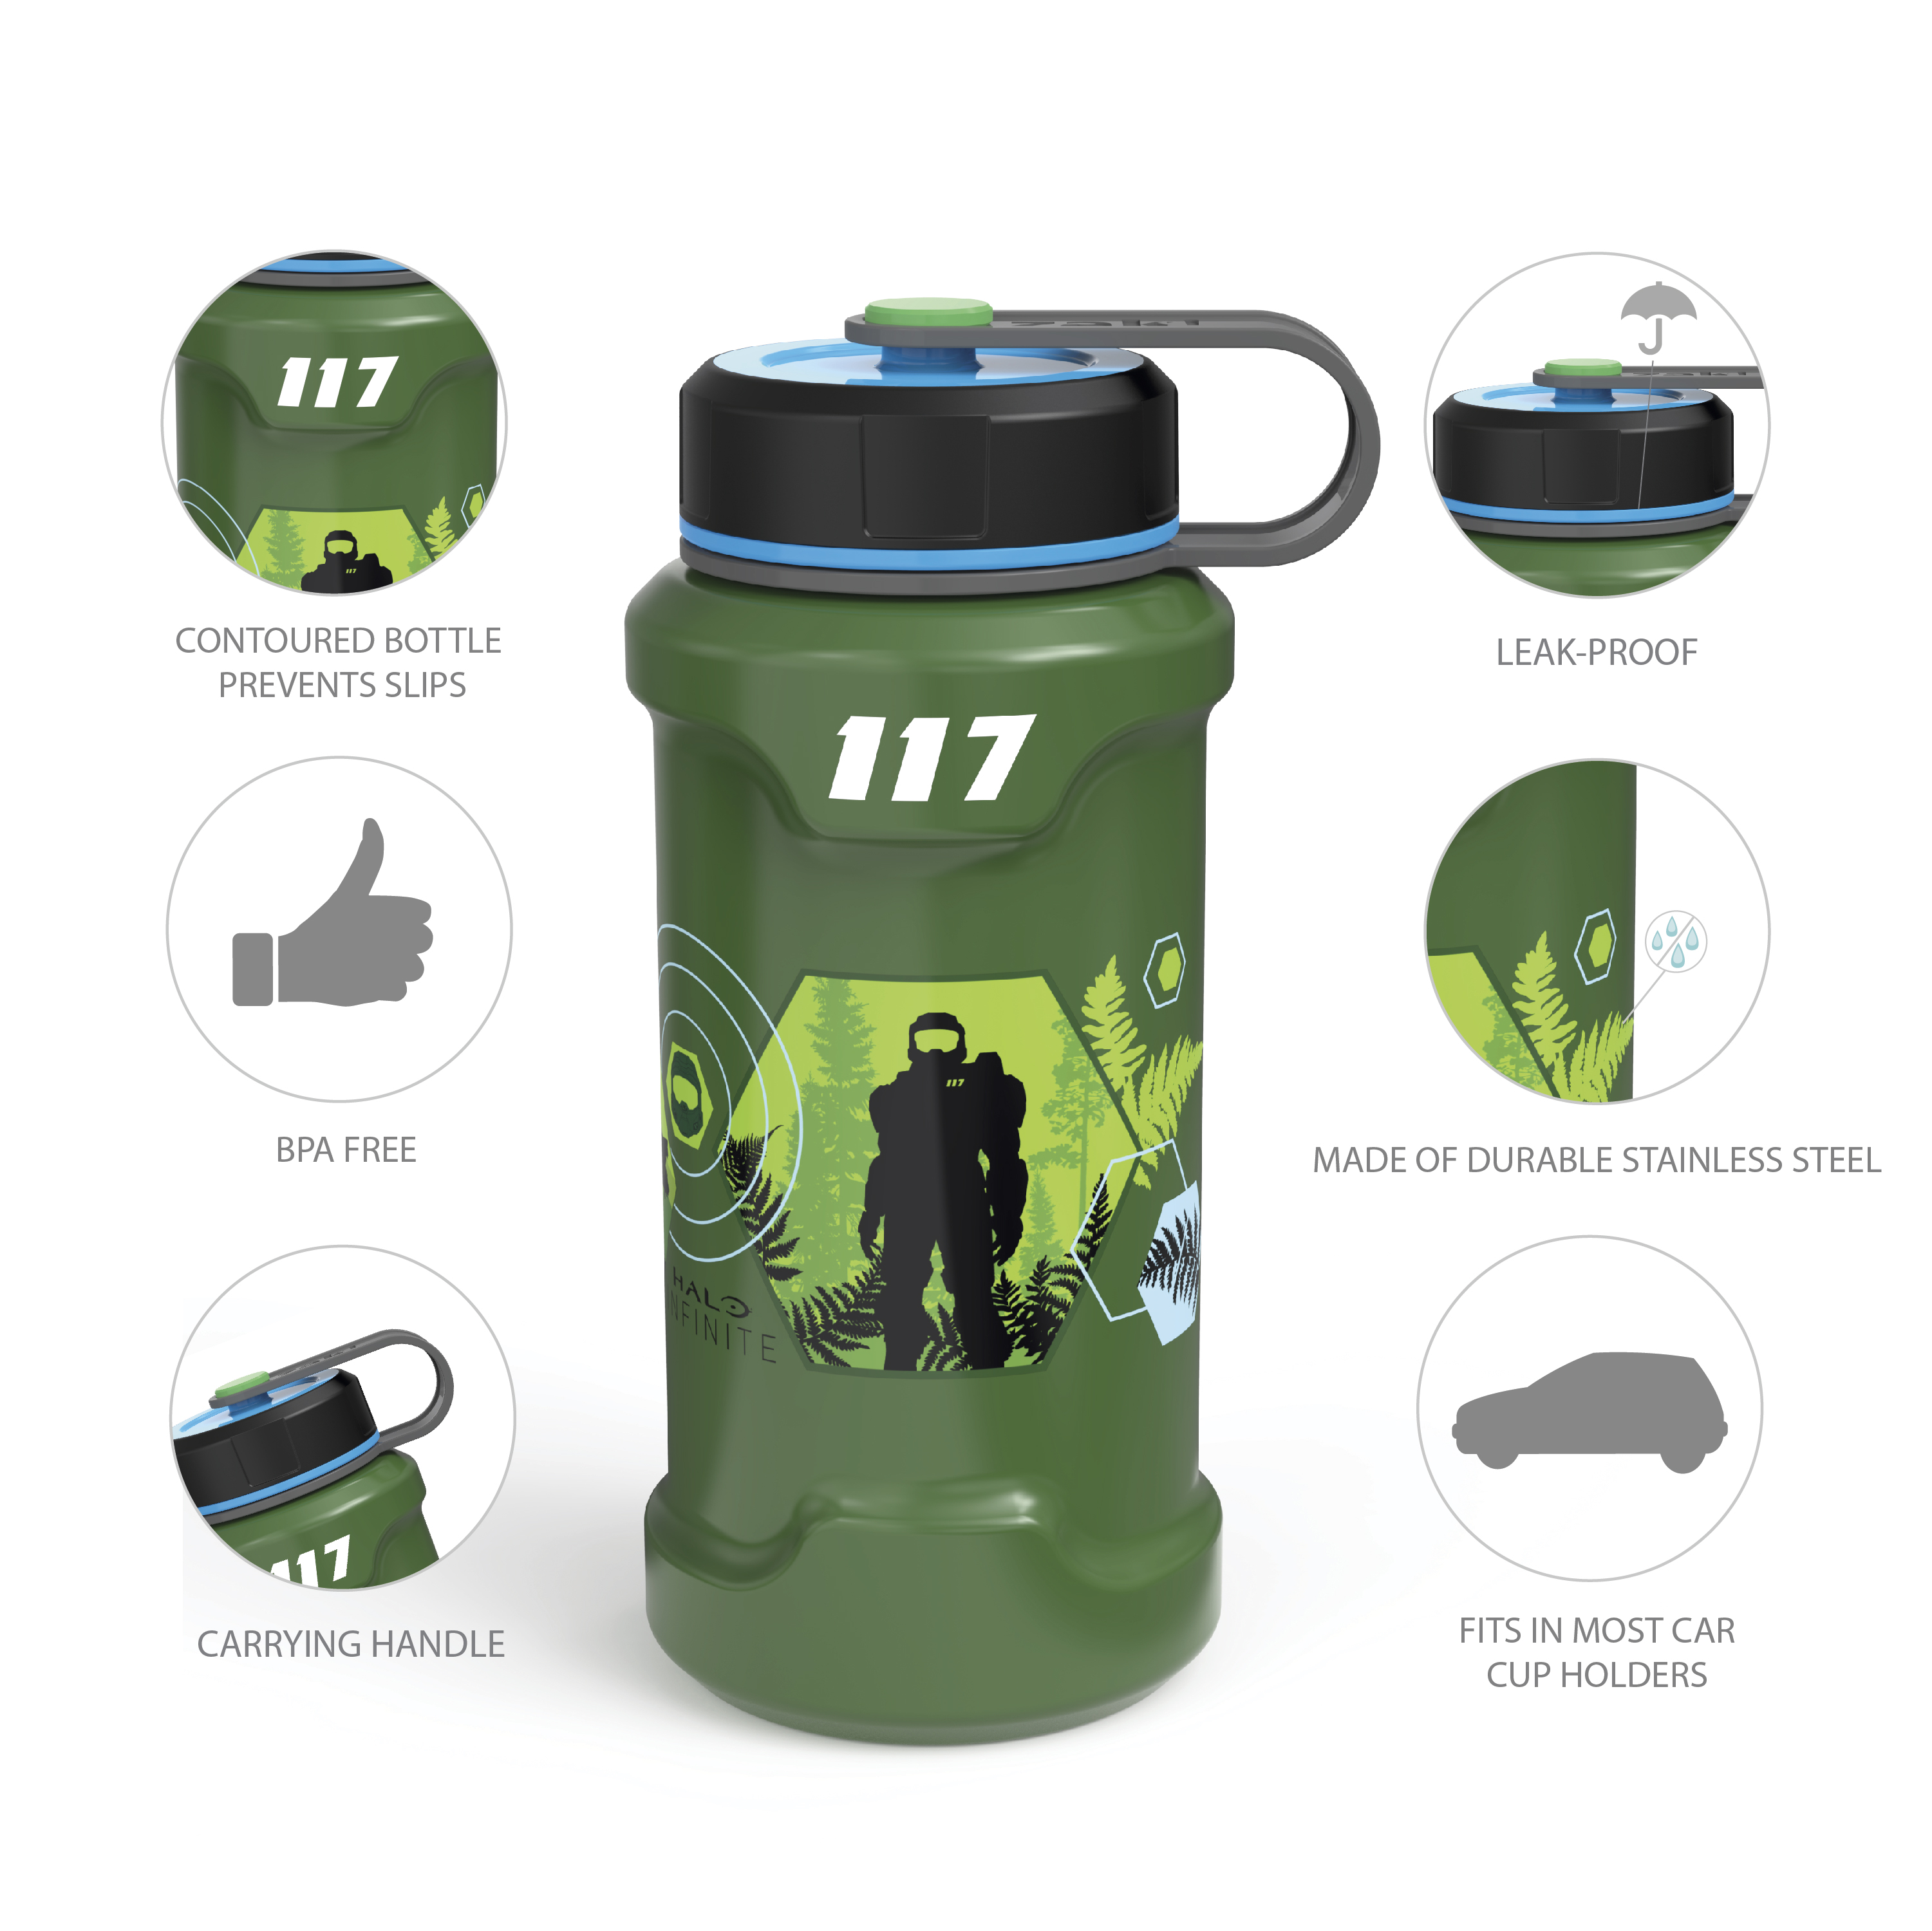 XBOX 24 ounce Stainless Steel Insulated Water Bottle, Halo slideshow image 8